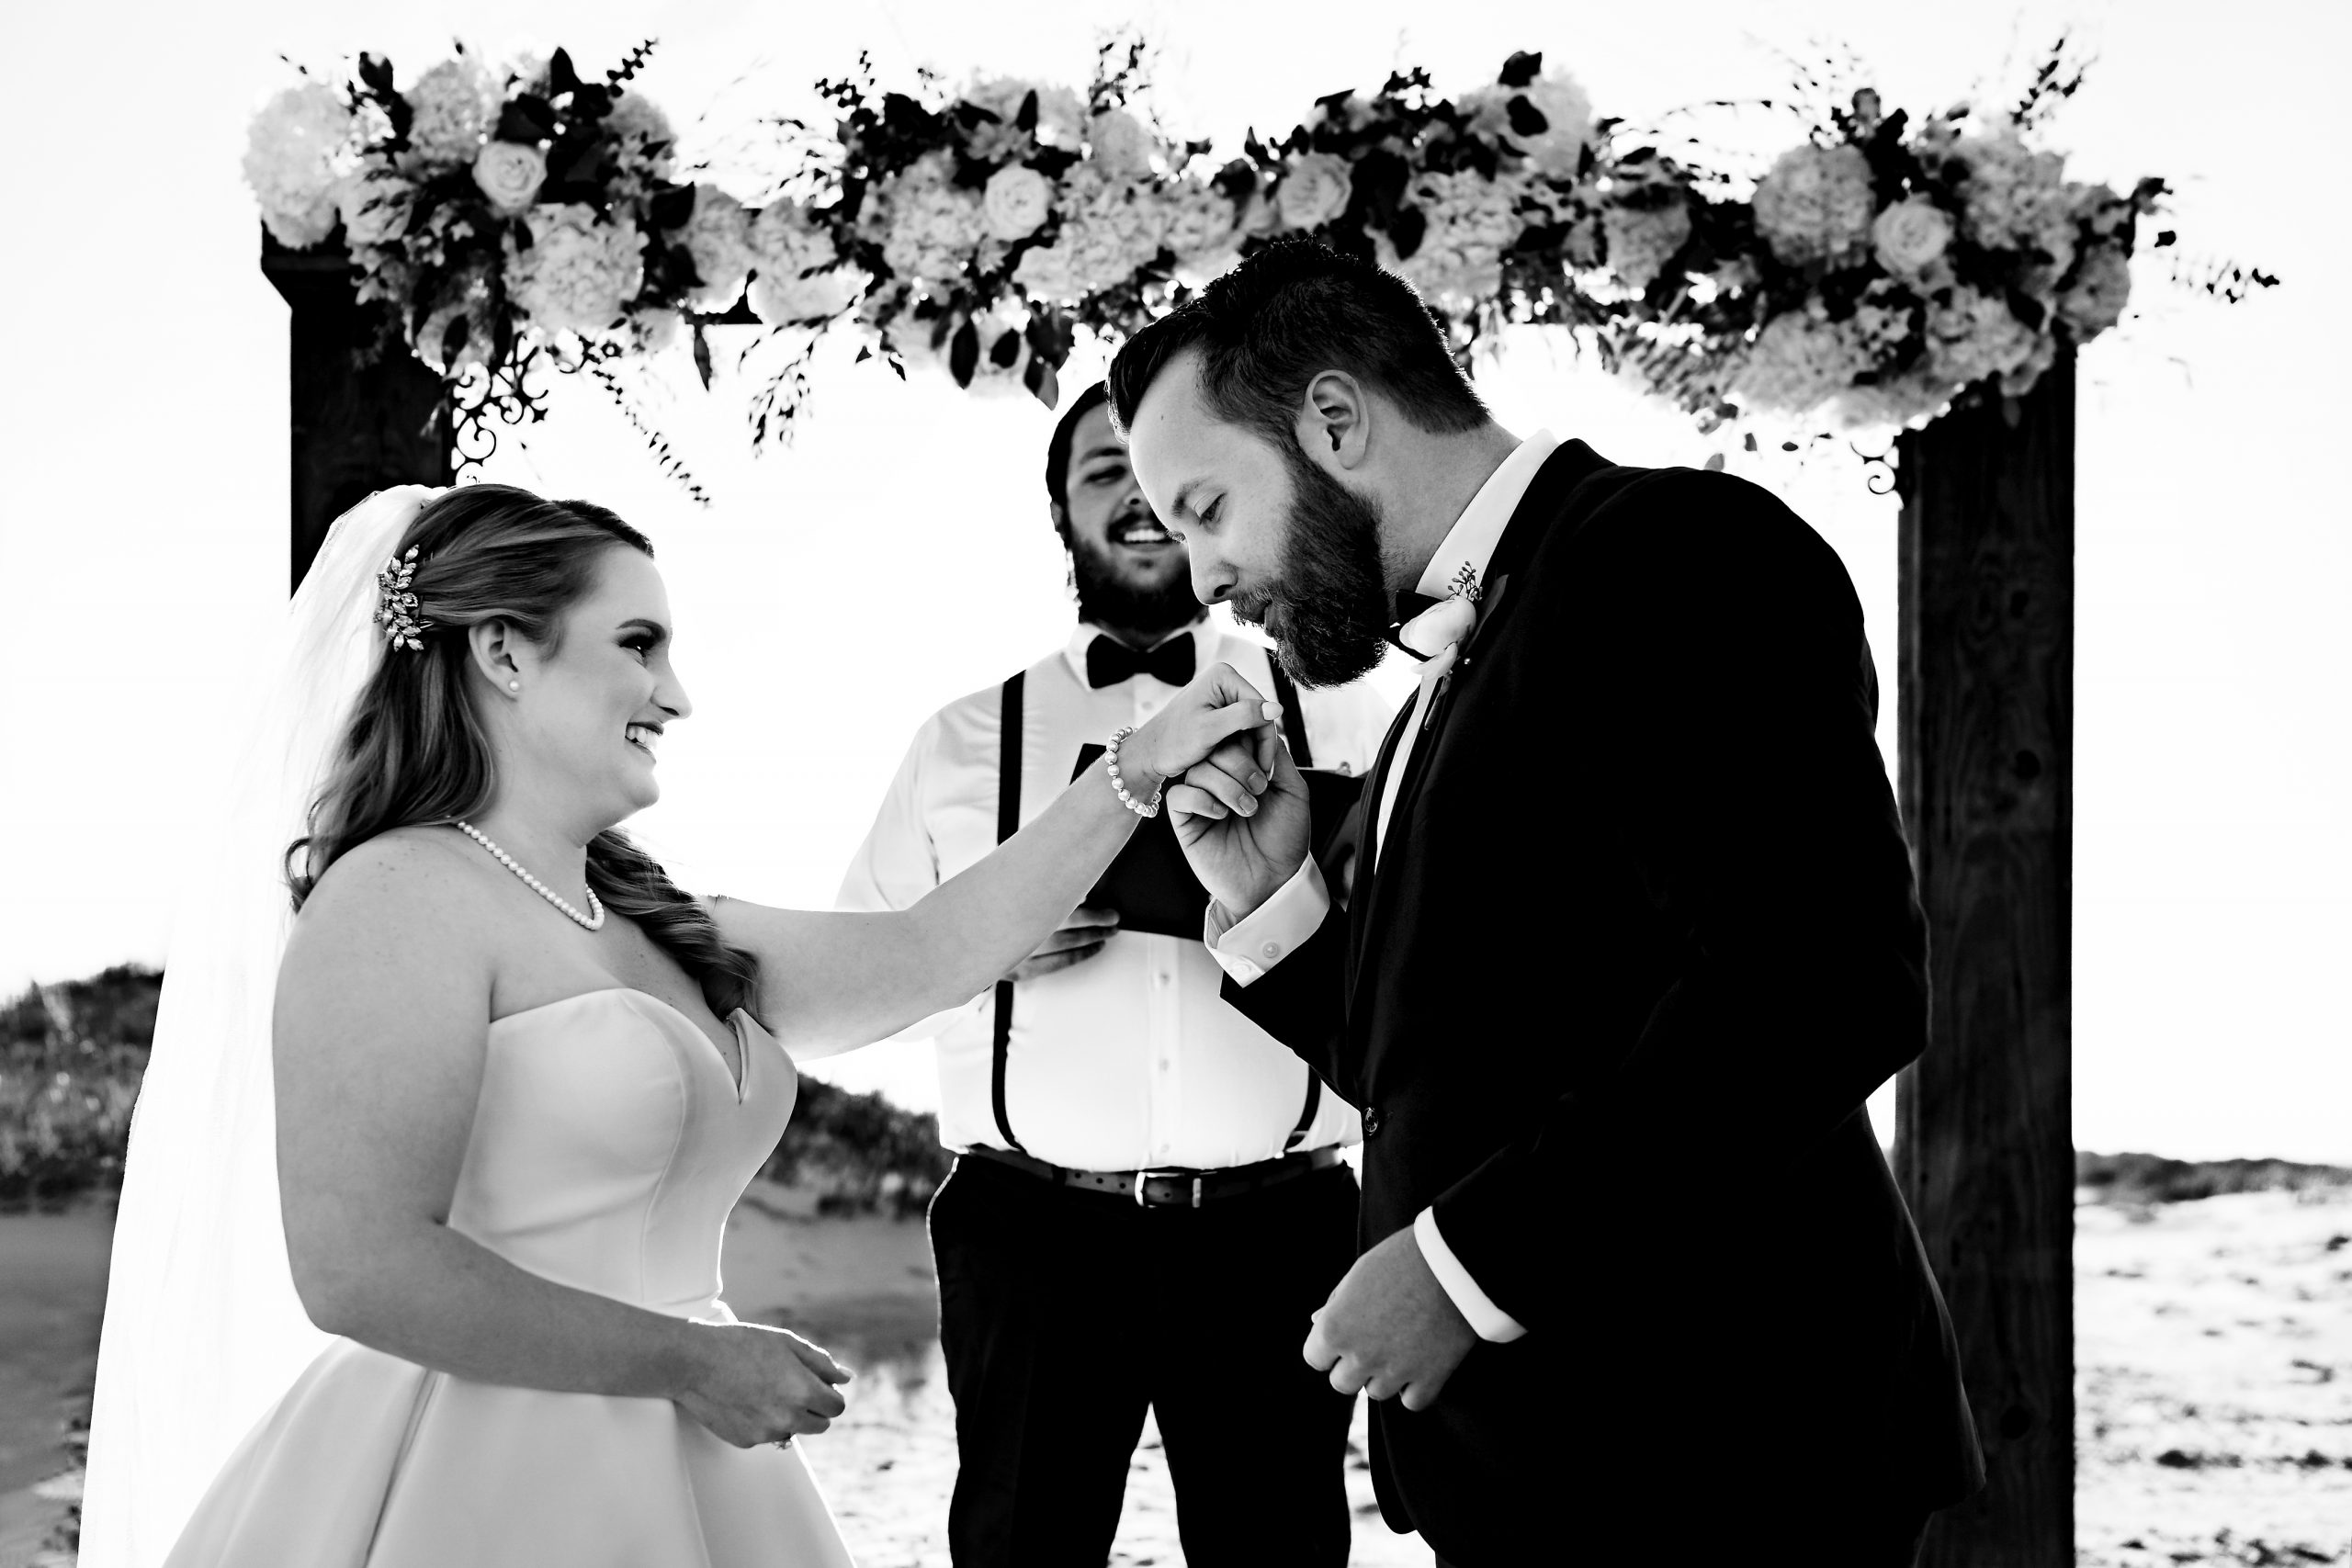 Groom reaches out to kiss the bride's hand at their wedding.